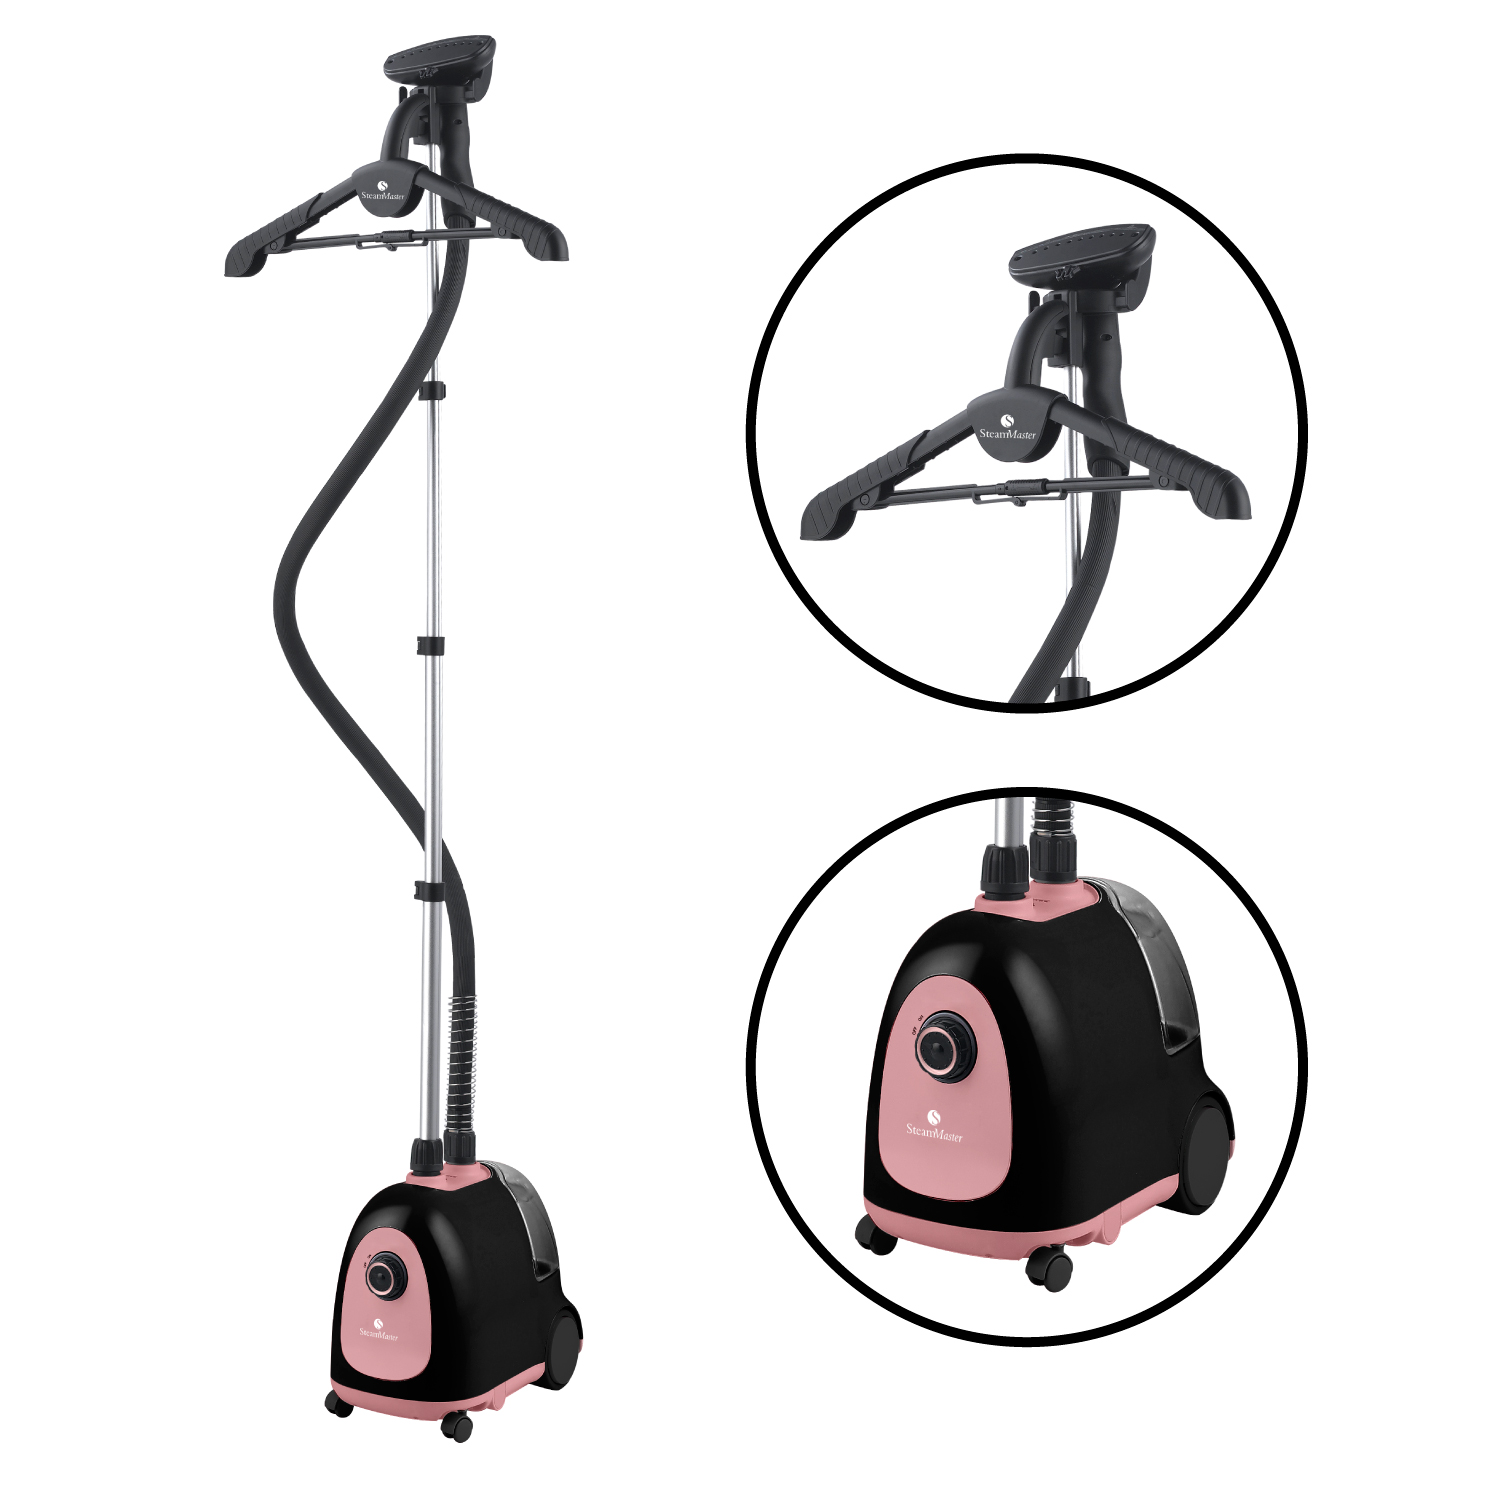 Steam and Go Professional Garment Steamer with Garment Hanger and Fabric Brush Pink Black by